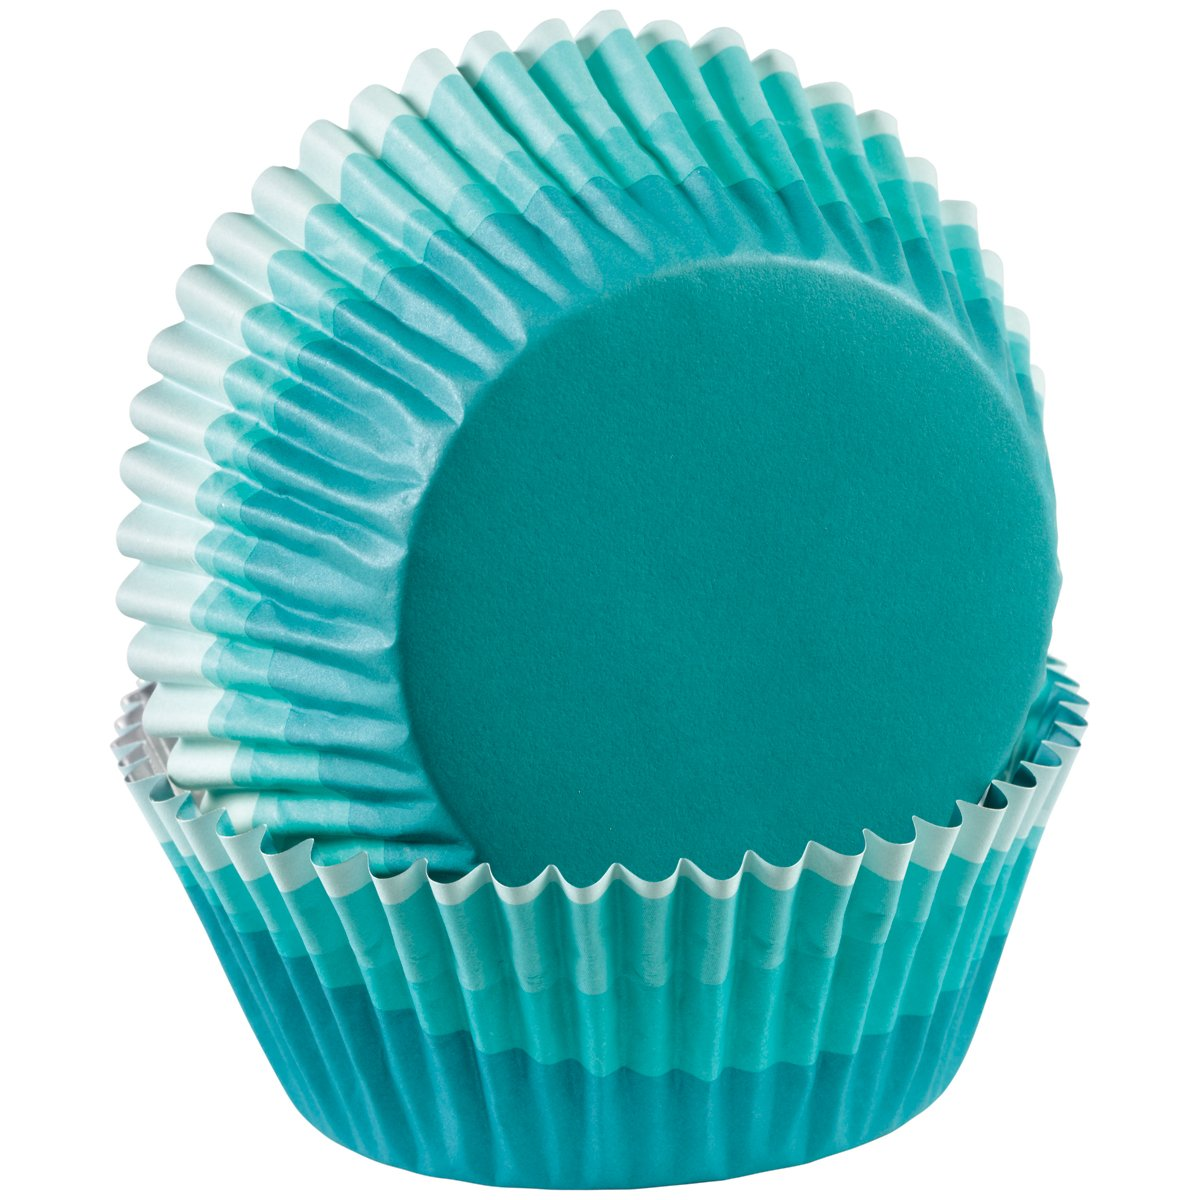 Wilton ColorCup Standard Baking Cups, Blue Ombre, 36-Pack